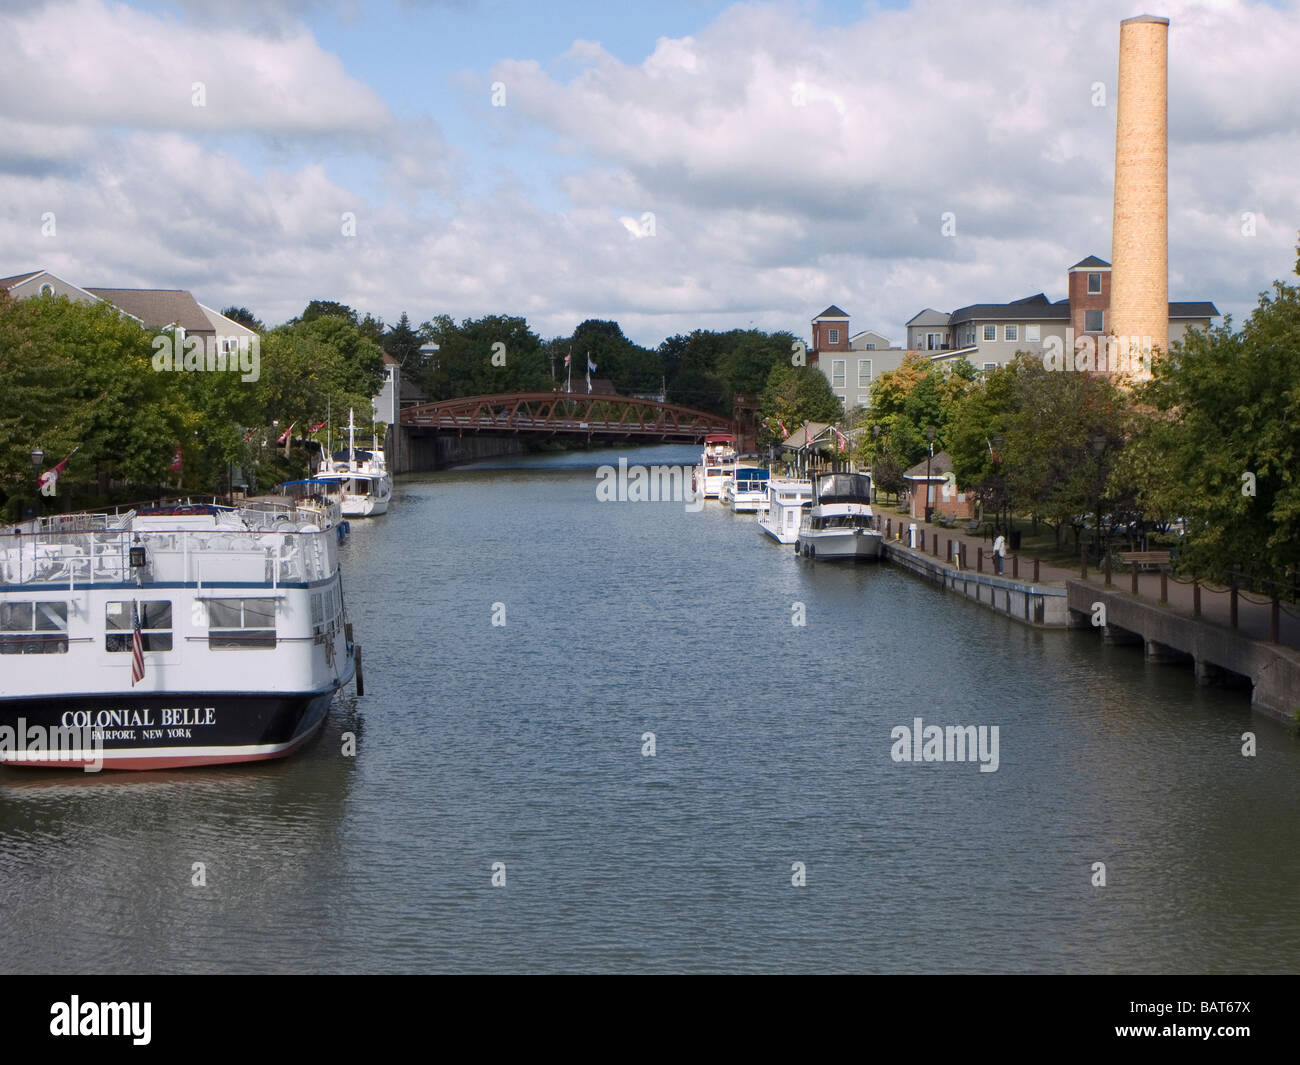 Harbor of Fairport on the Erie canal - Stock Image